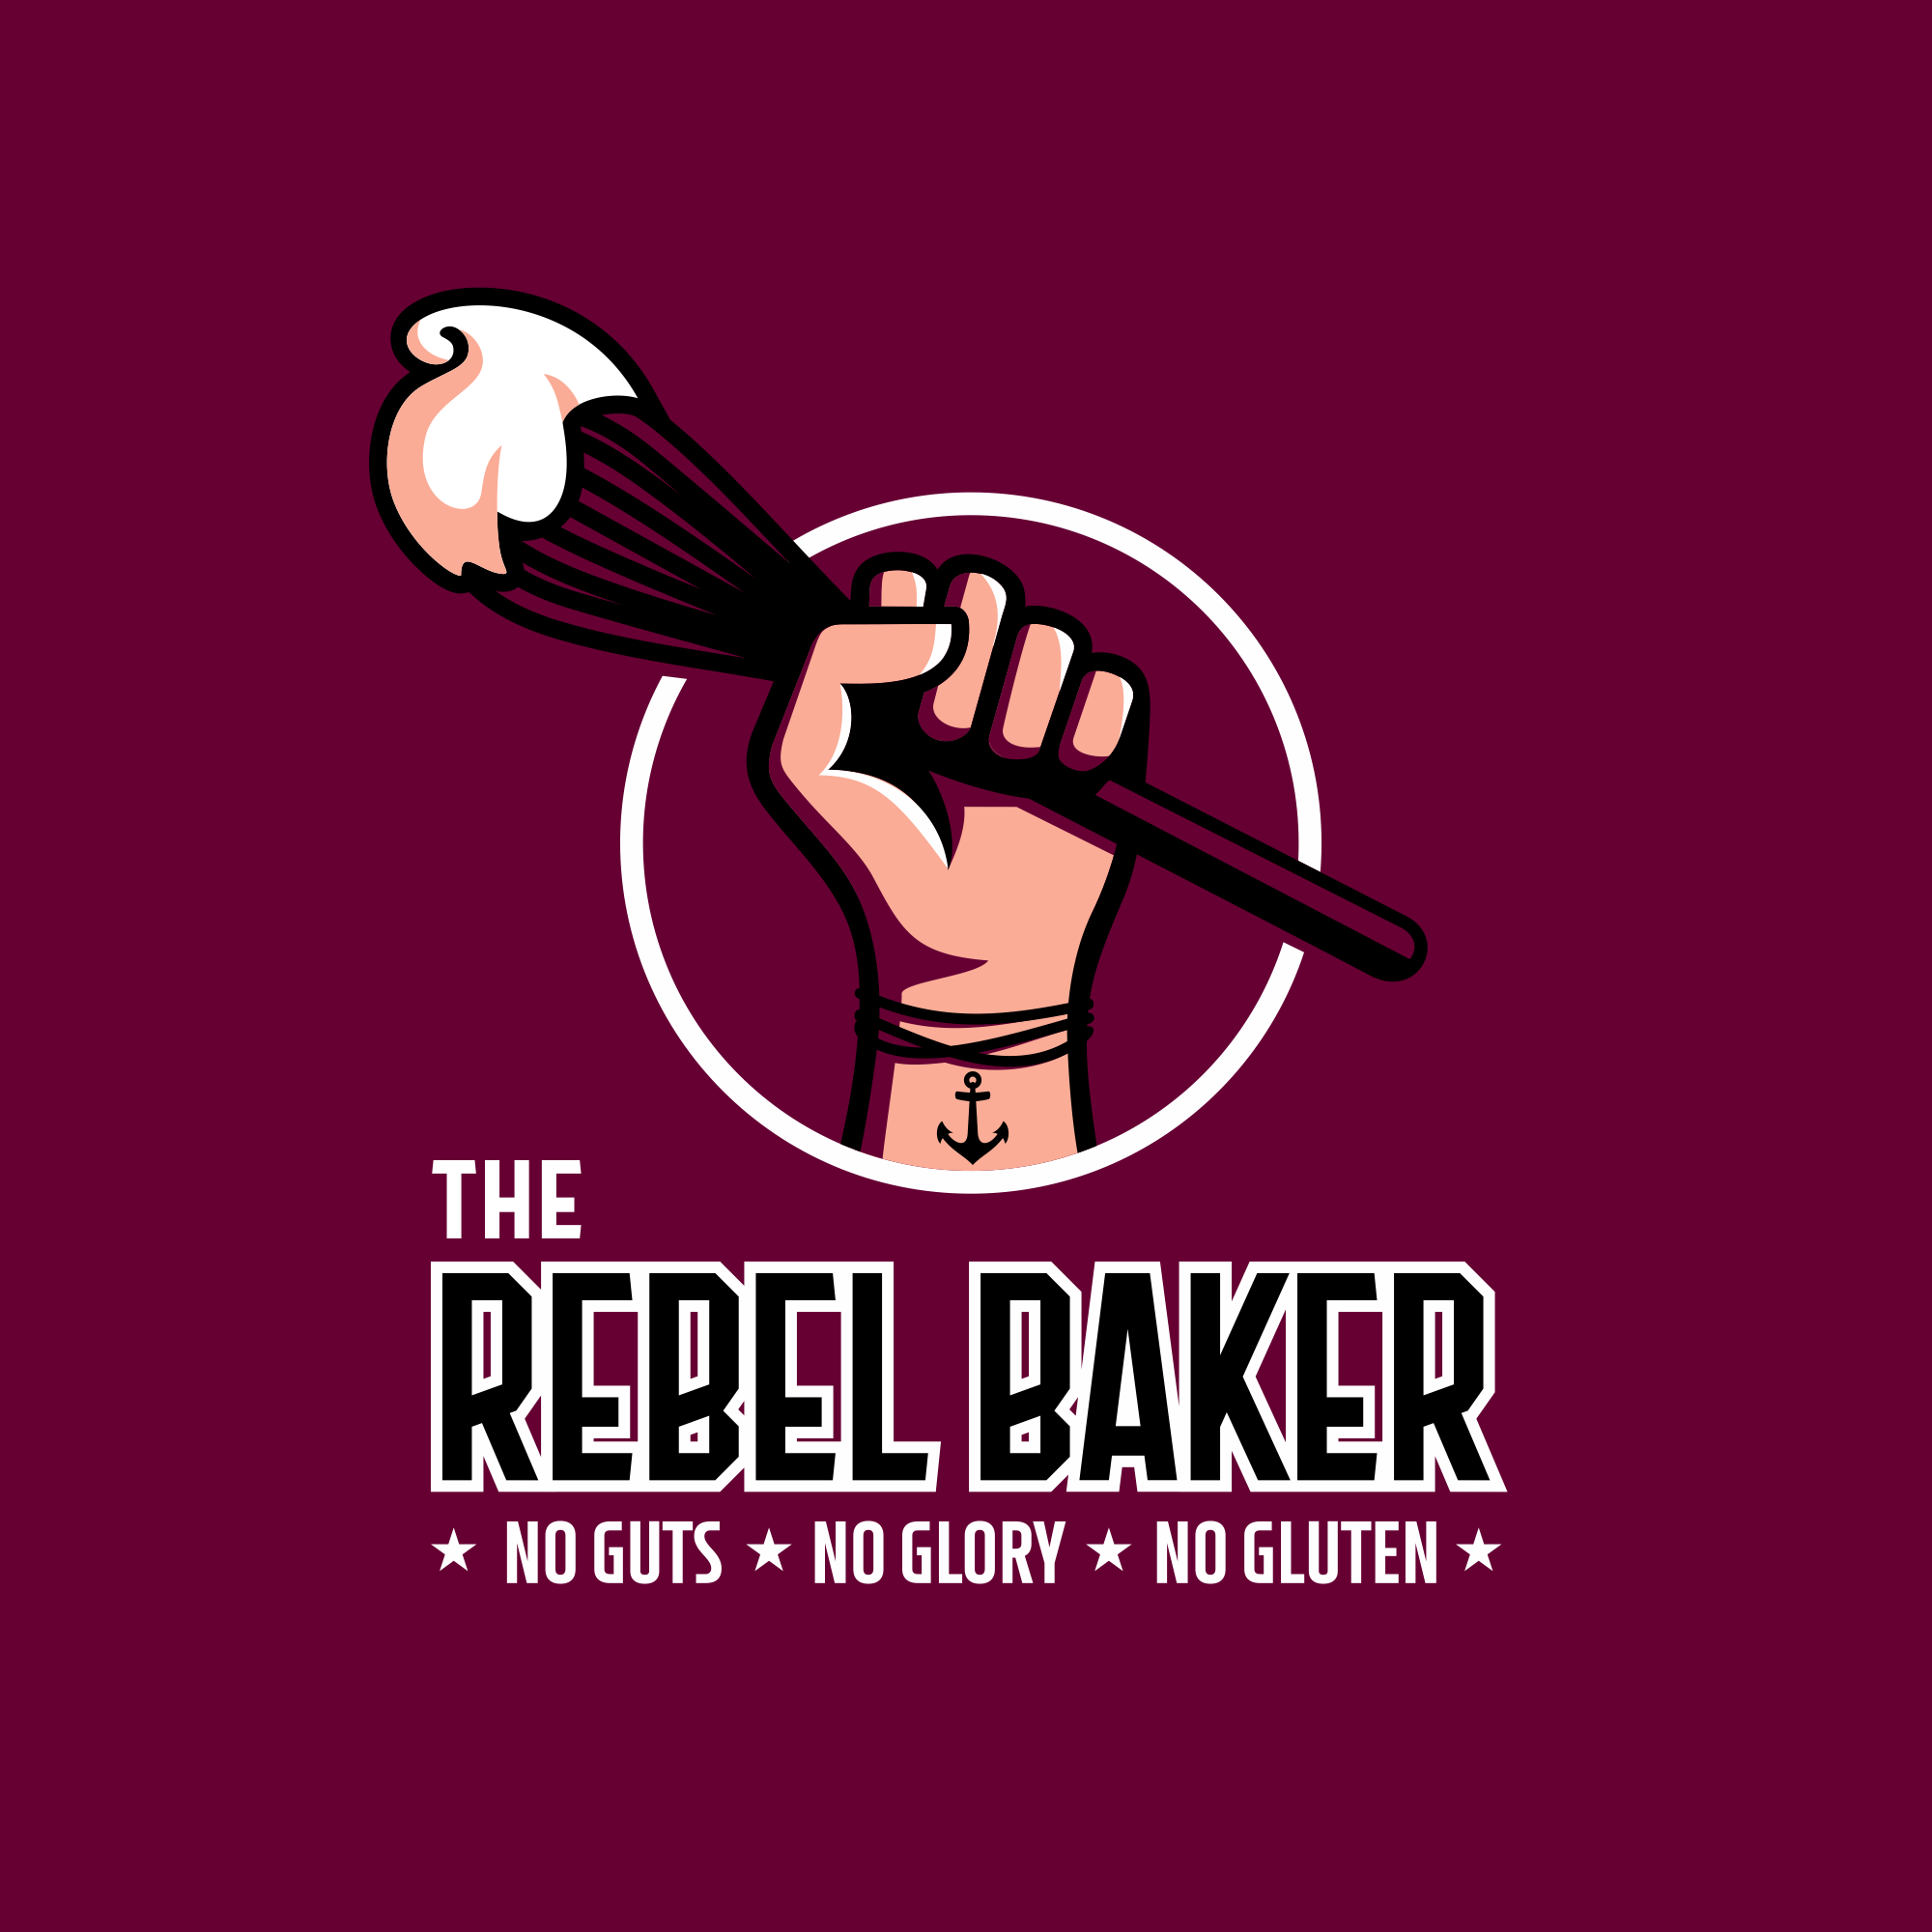 The Rebel Baker ( gluten free goods) design that embodies my slogan No Guts, No Glory, No Gluten.